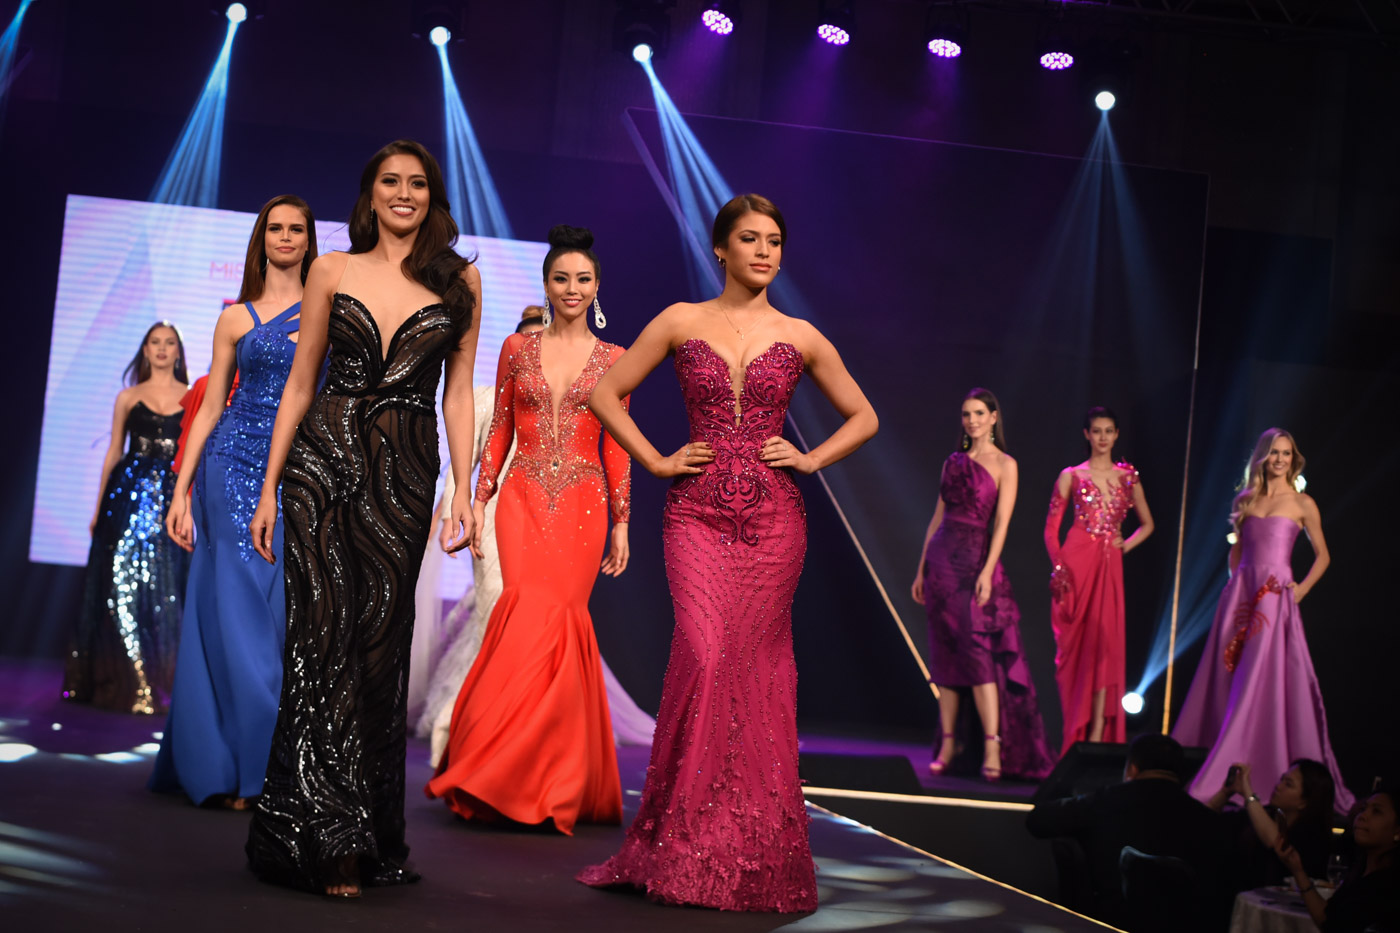 The 2017 Miss Universe candidates sashay in the runway in evening gowns by the country's top designers